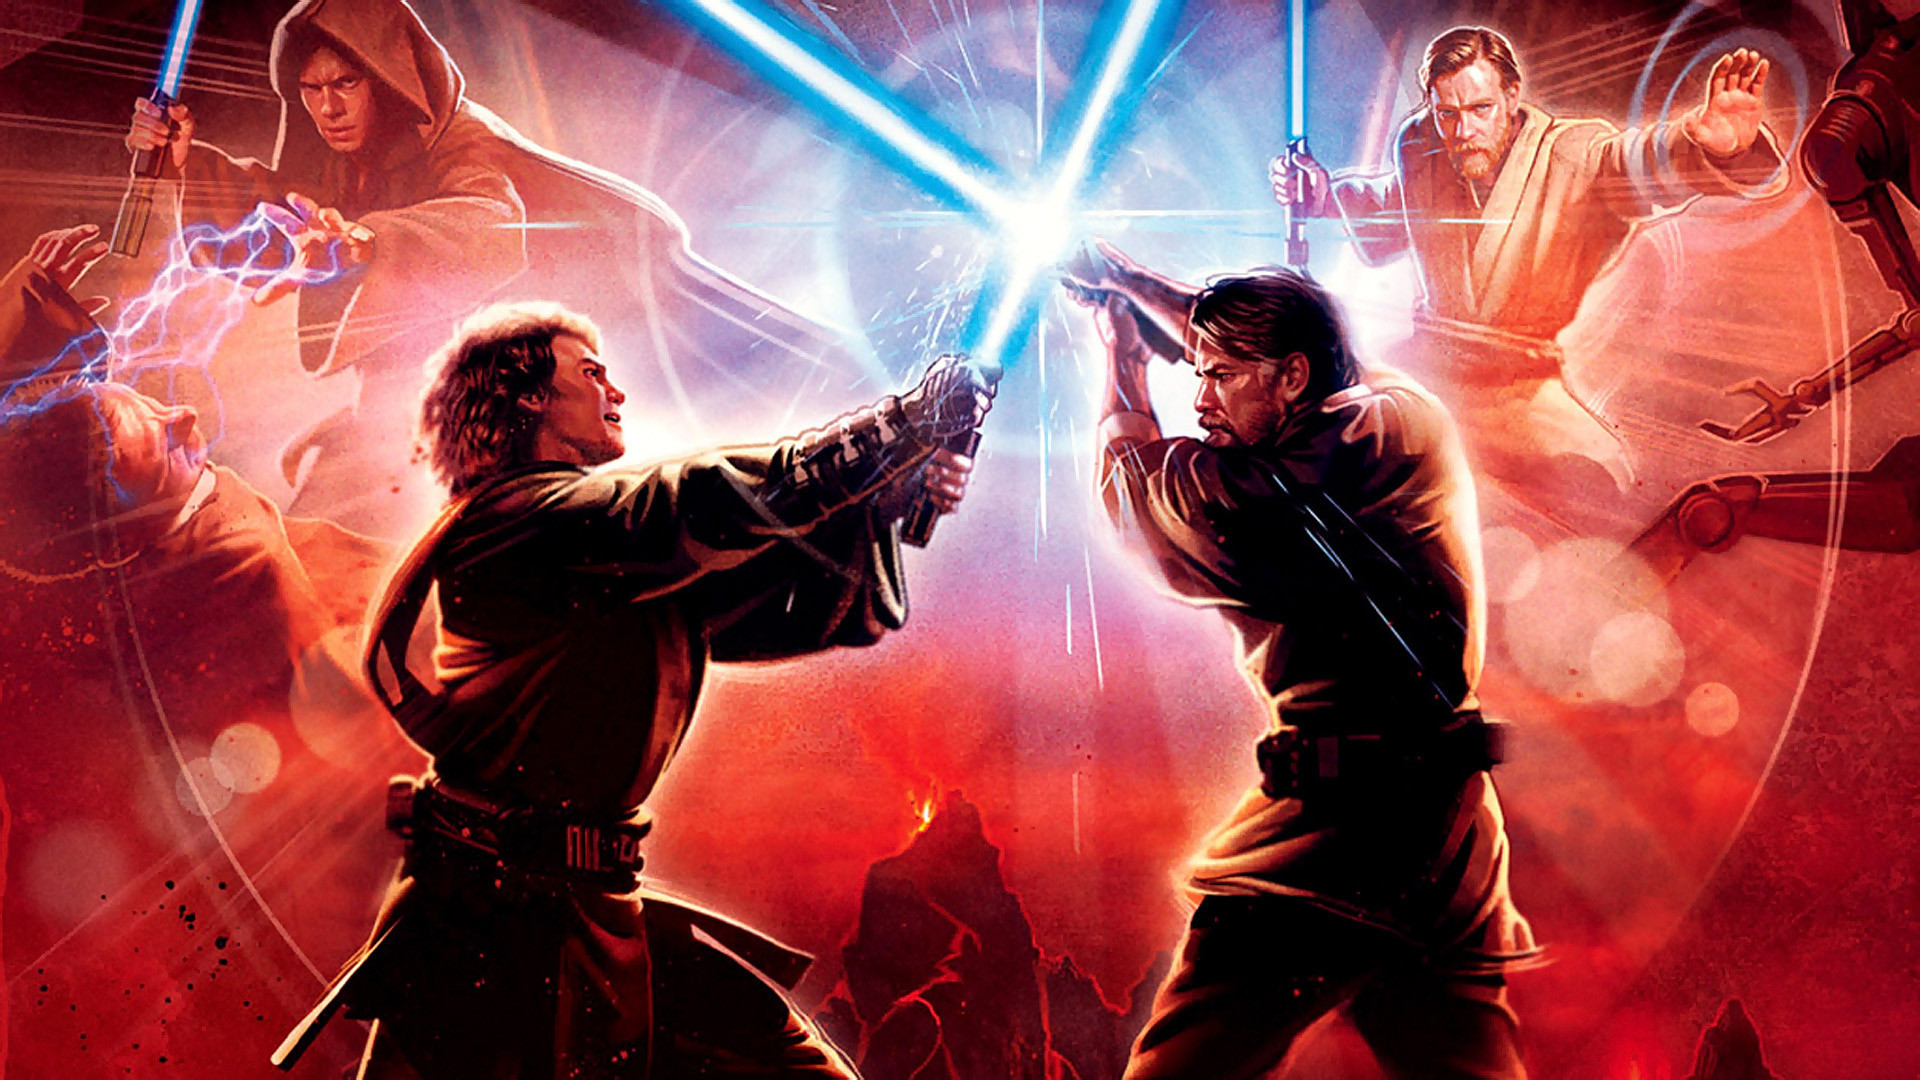 Star Wars Episode Iii Revenge Of The Sith Hd Wallpaper